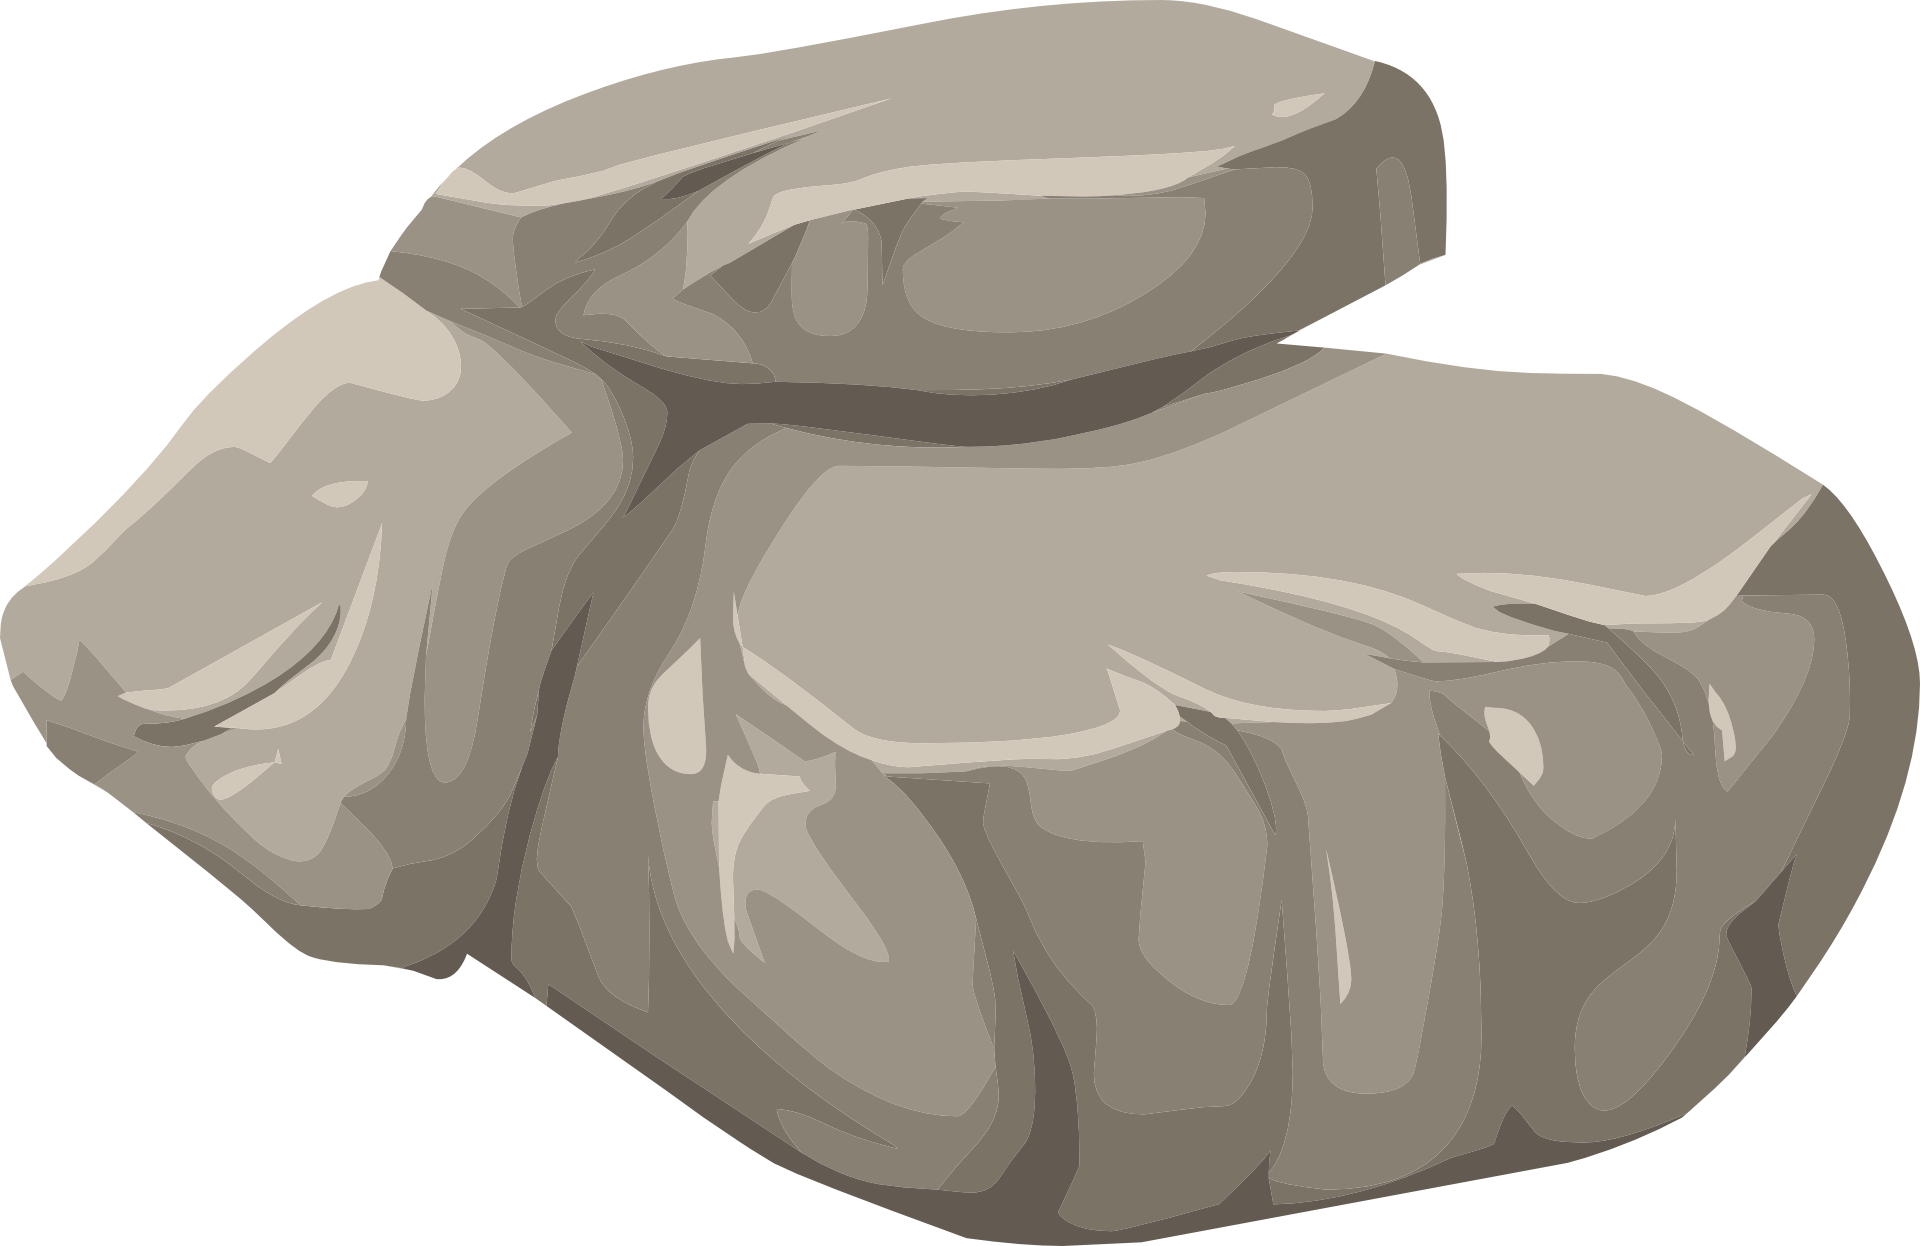 image free library Boulder clipart round stone. Rock nature granite drawing.